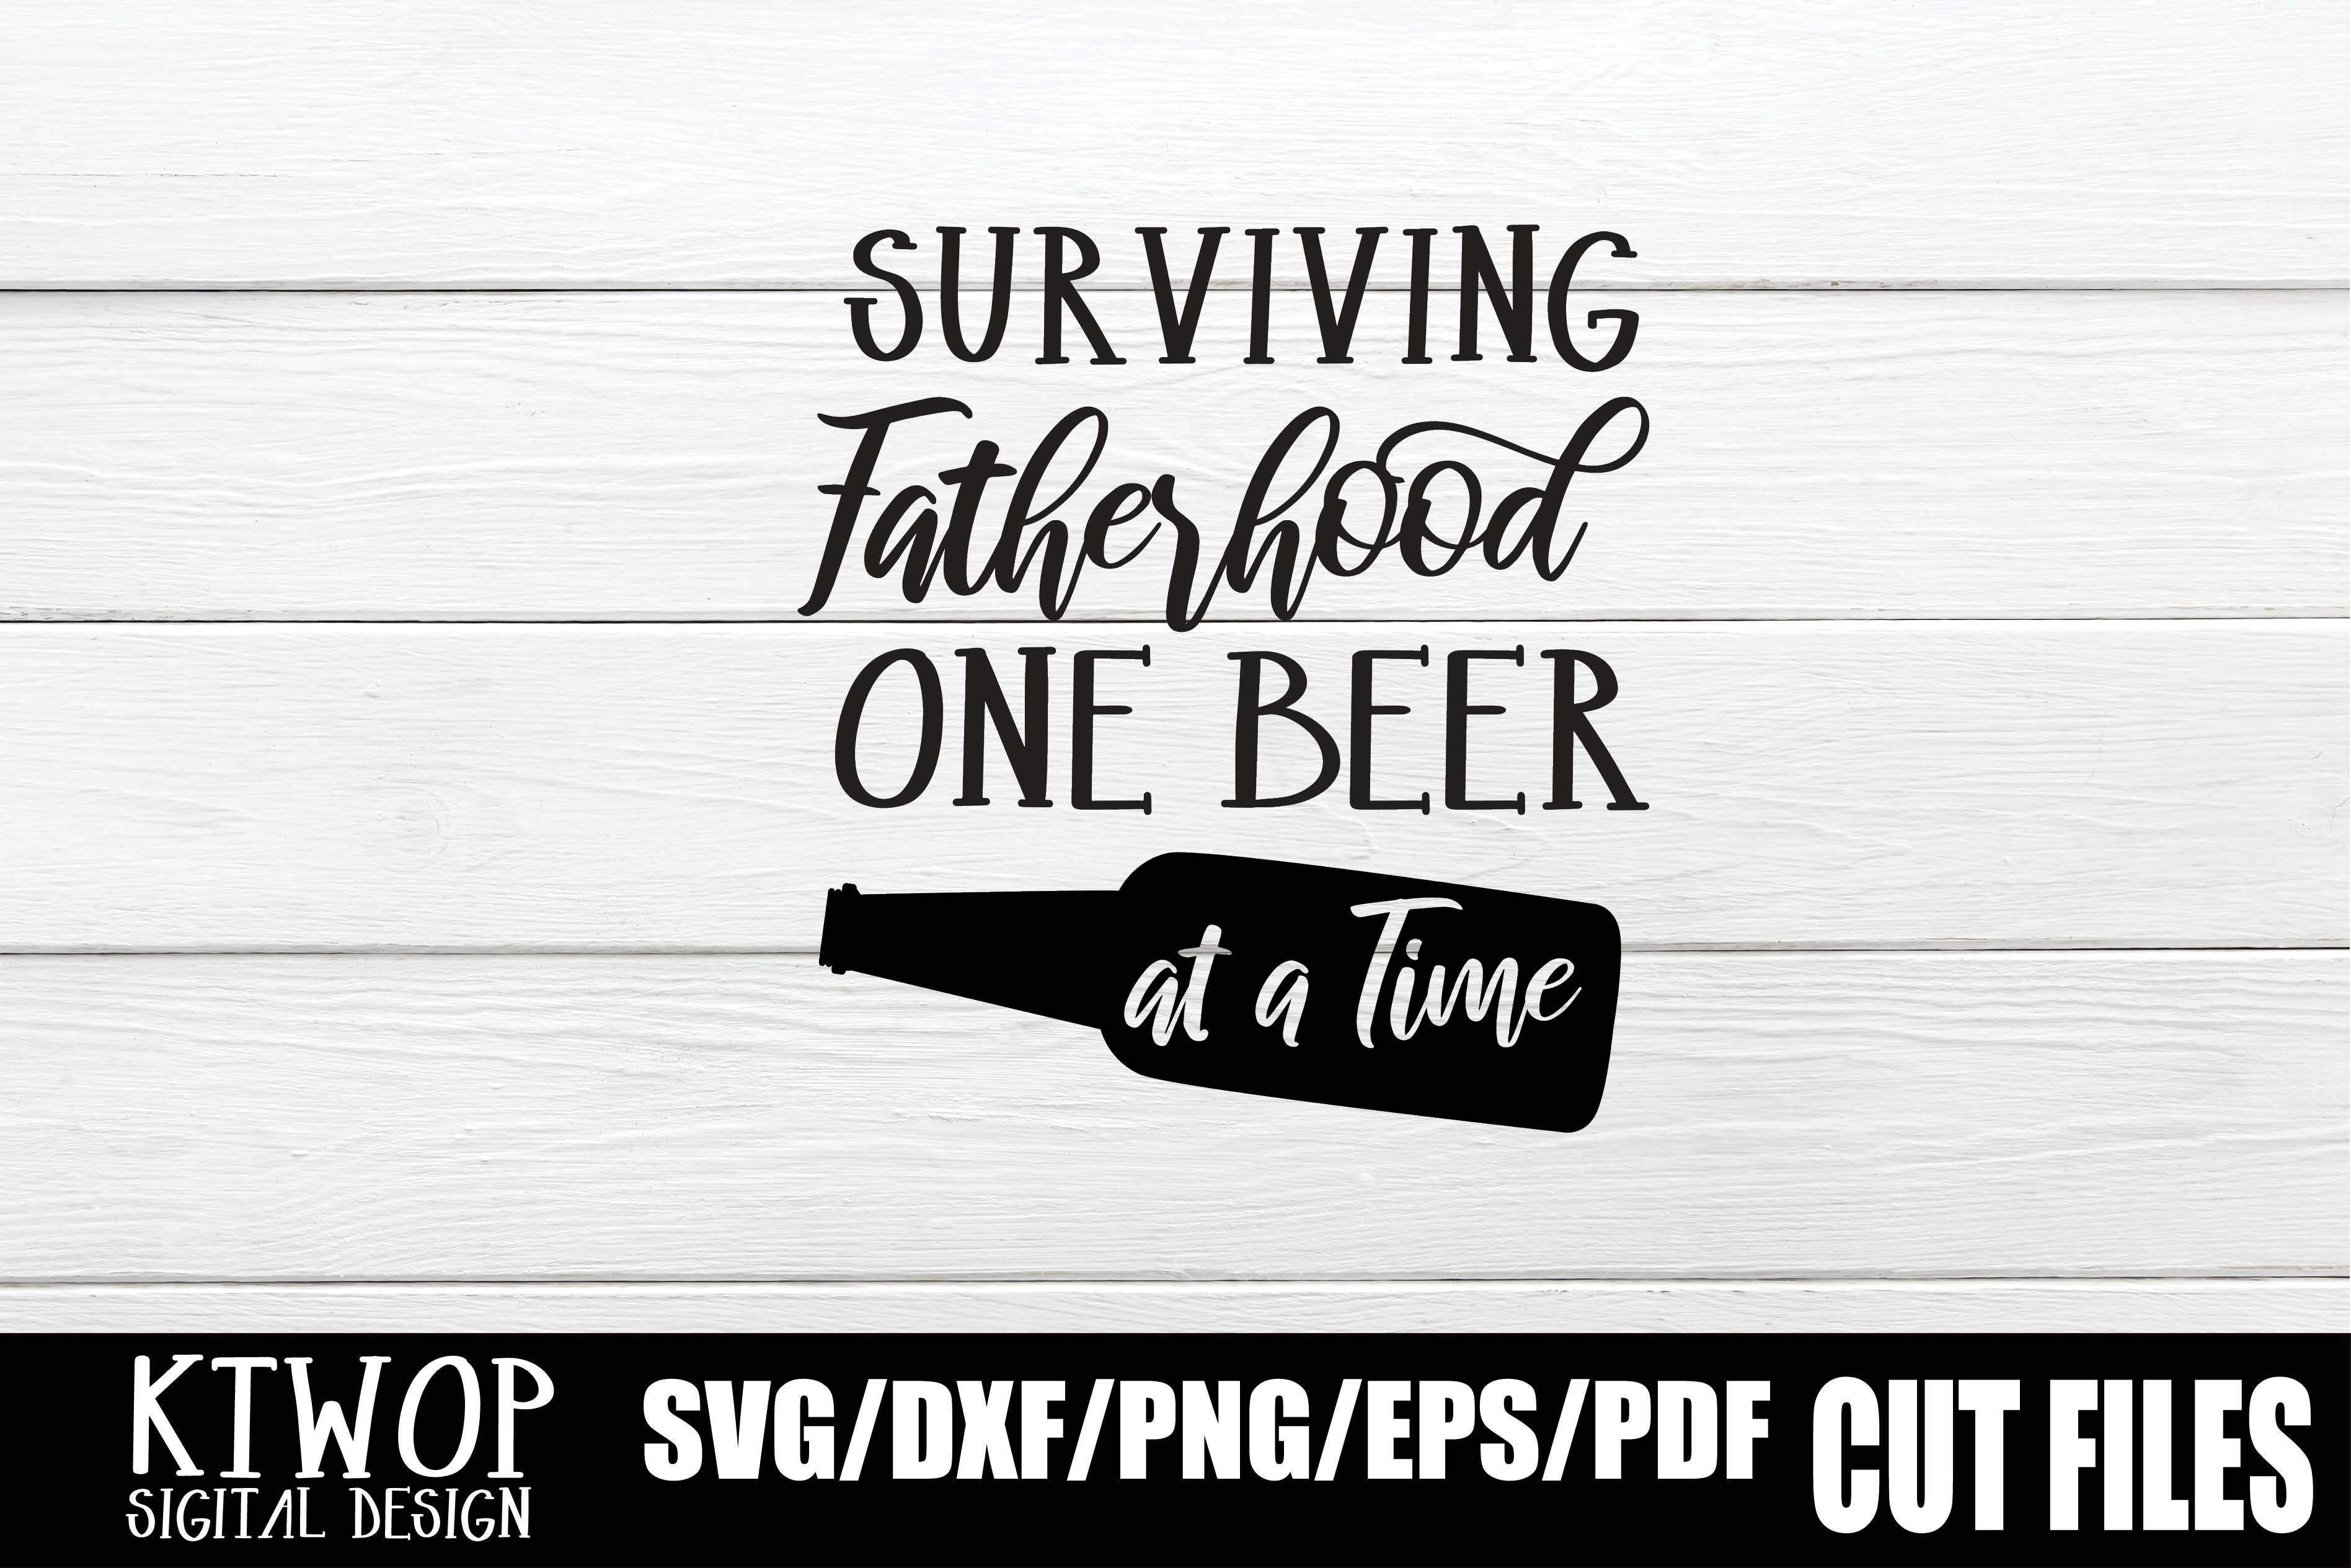 Download Free Surviving Fatherhood One Beer At A Time Graphic By Ktwop for Cricut Explore, Silhouette and other cutting machines.